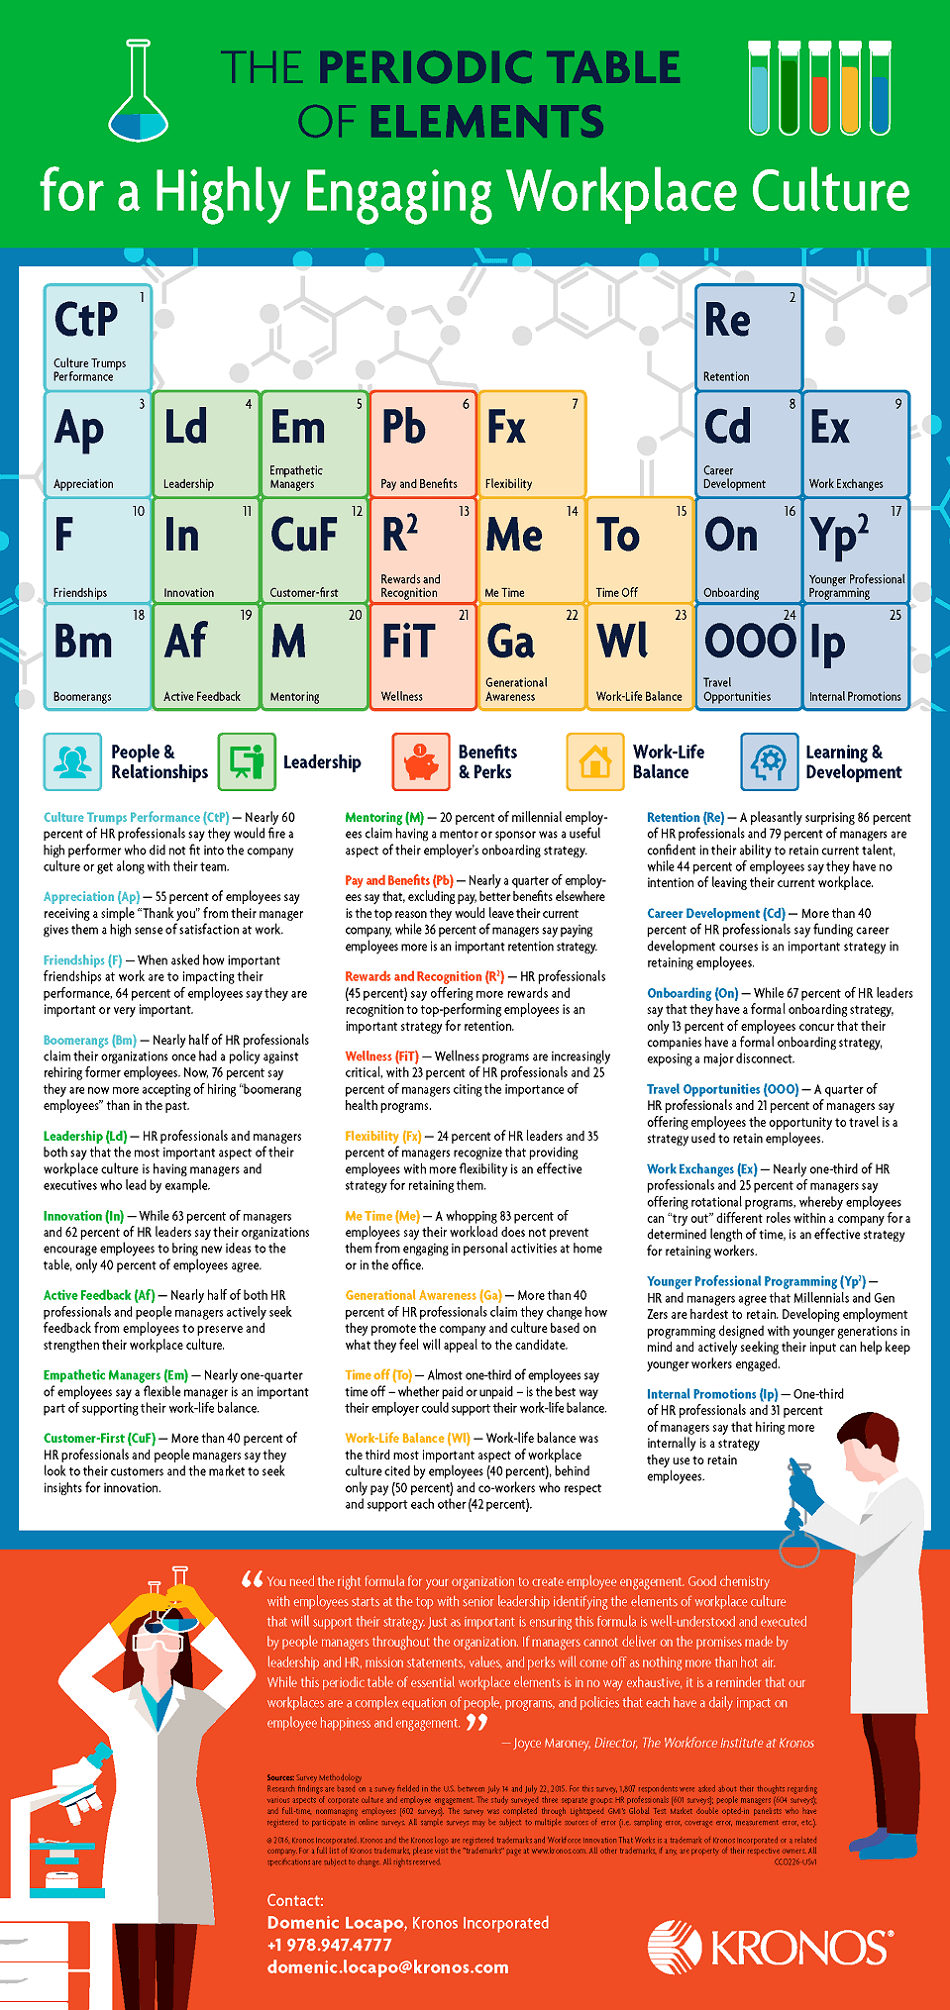 the periodic table of elements for a highly engaging workplace culture infographic - Periodic Table Of Elements Be